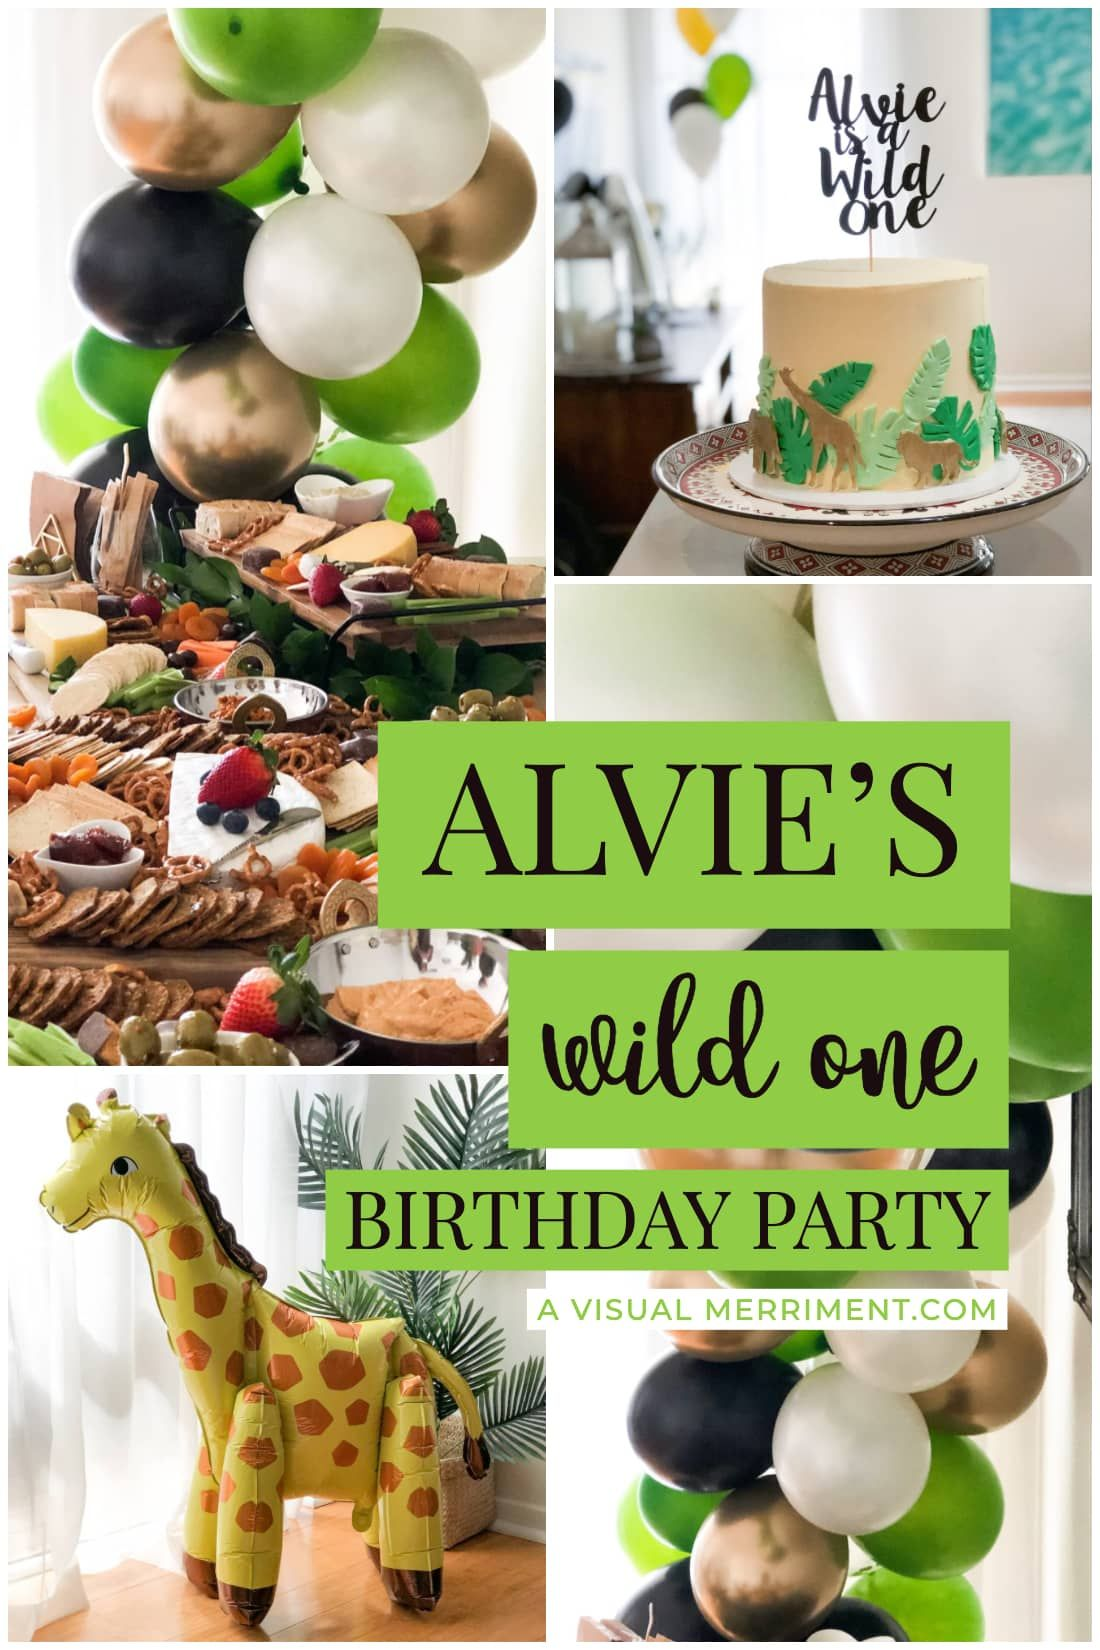 Alvies Wild One Birthday Party | My nephews first Birthday with a safari wild one theme | A Visual Merriment #safari #kidsparties #boysparty #partytheme #diyparty #partyplanning #diypartyideas